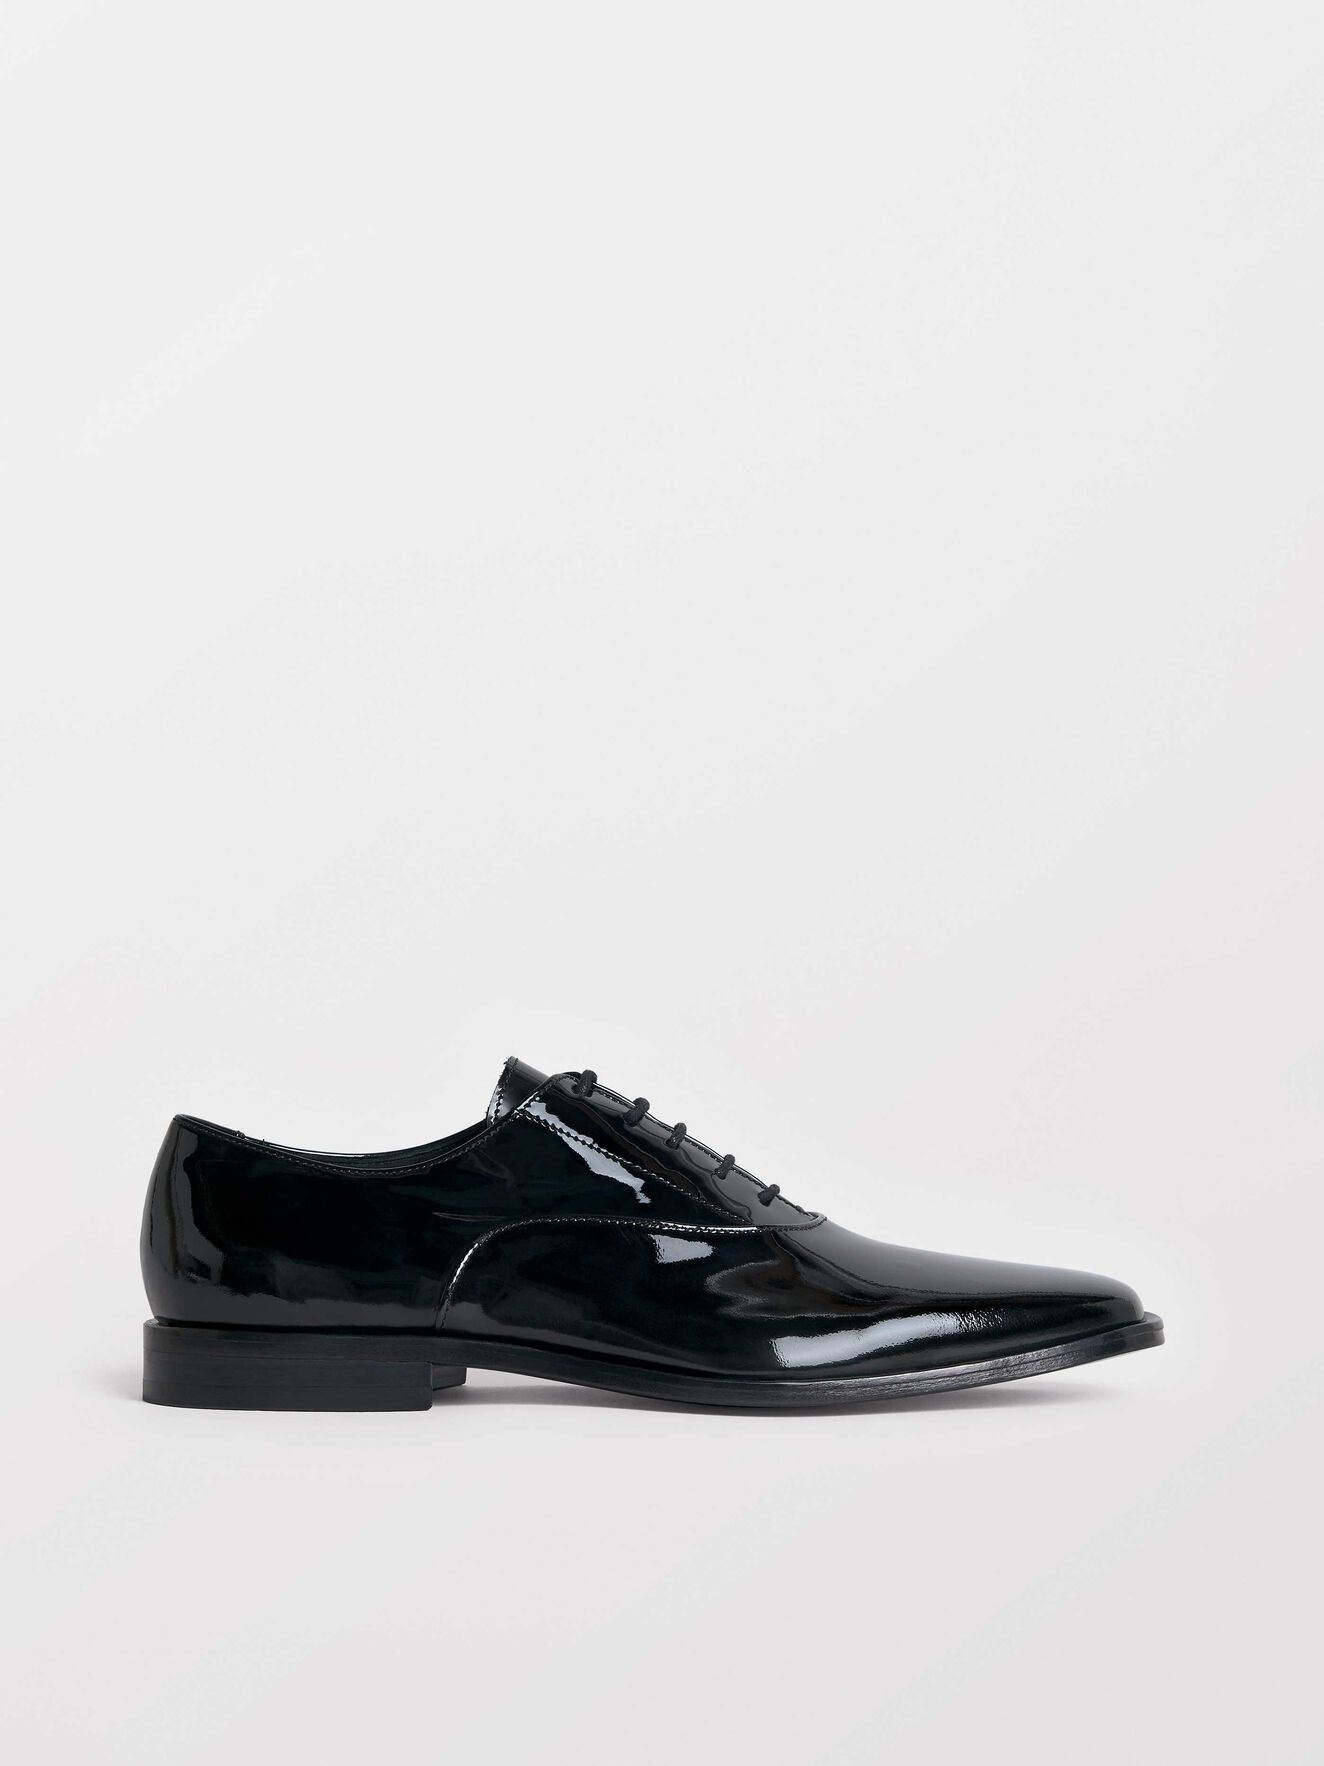 Saut Schuh in Black from Tiger of Sweden